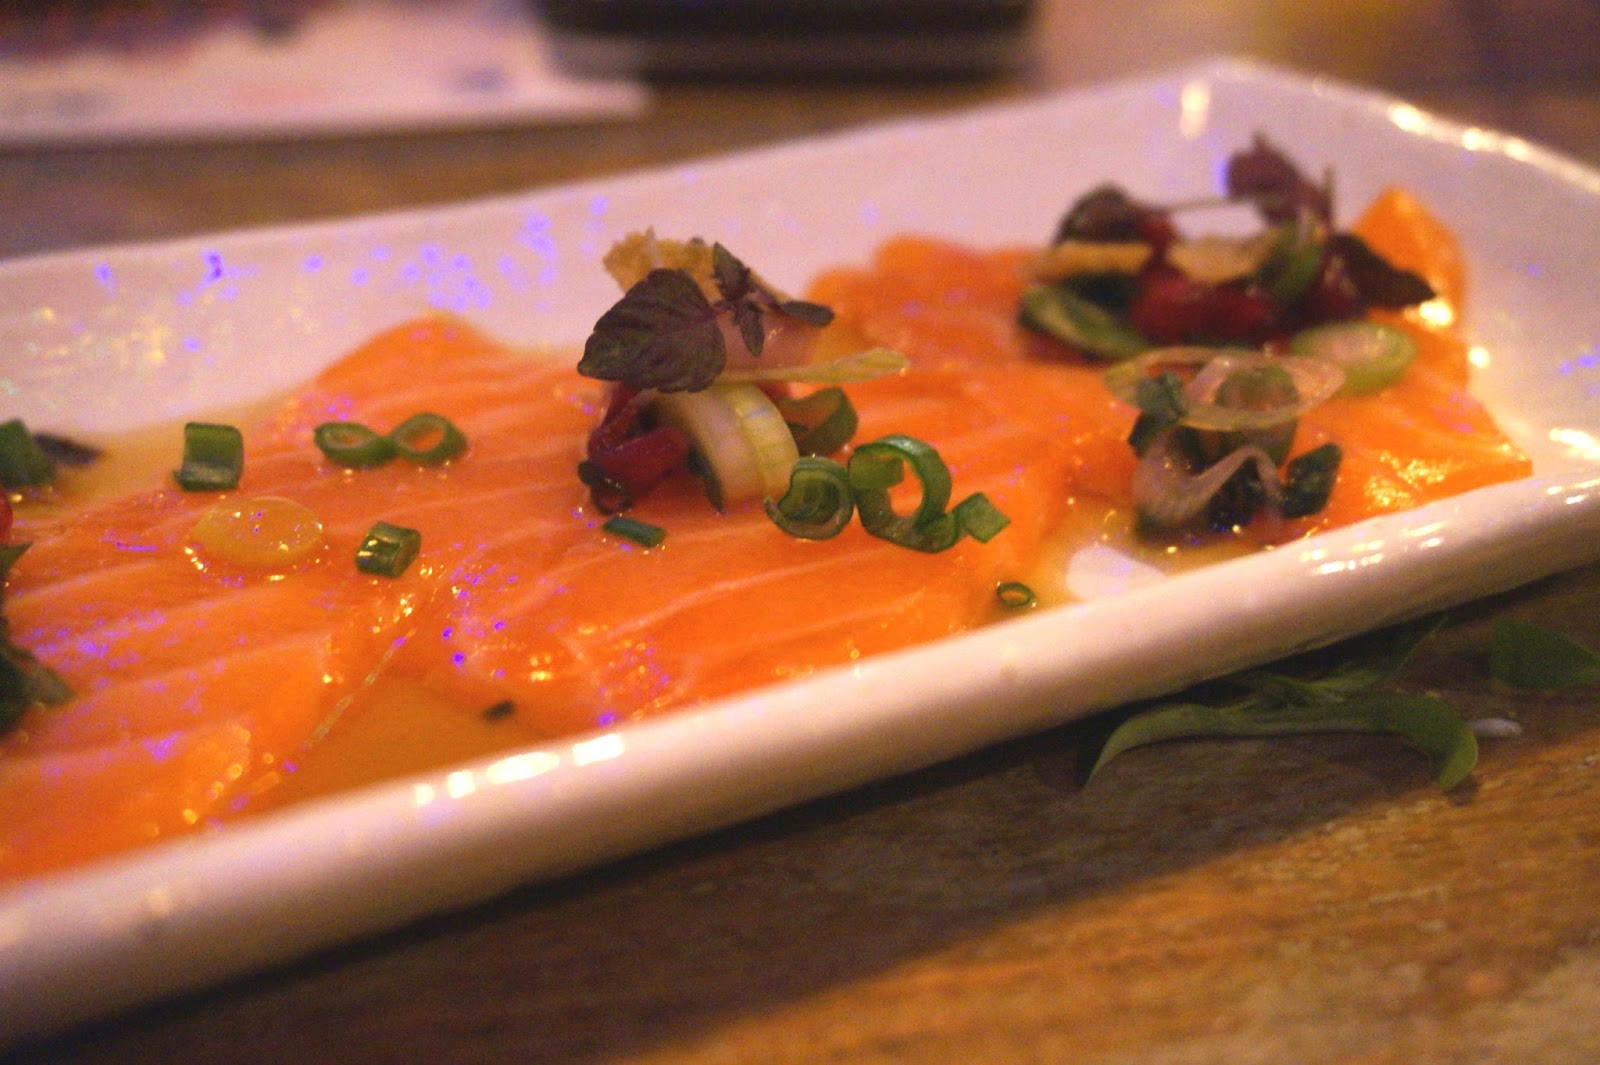 Salmon tiradito with Nikkei tiger's milk